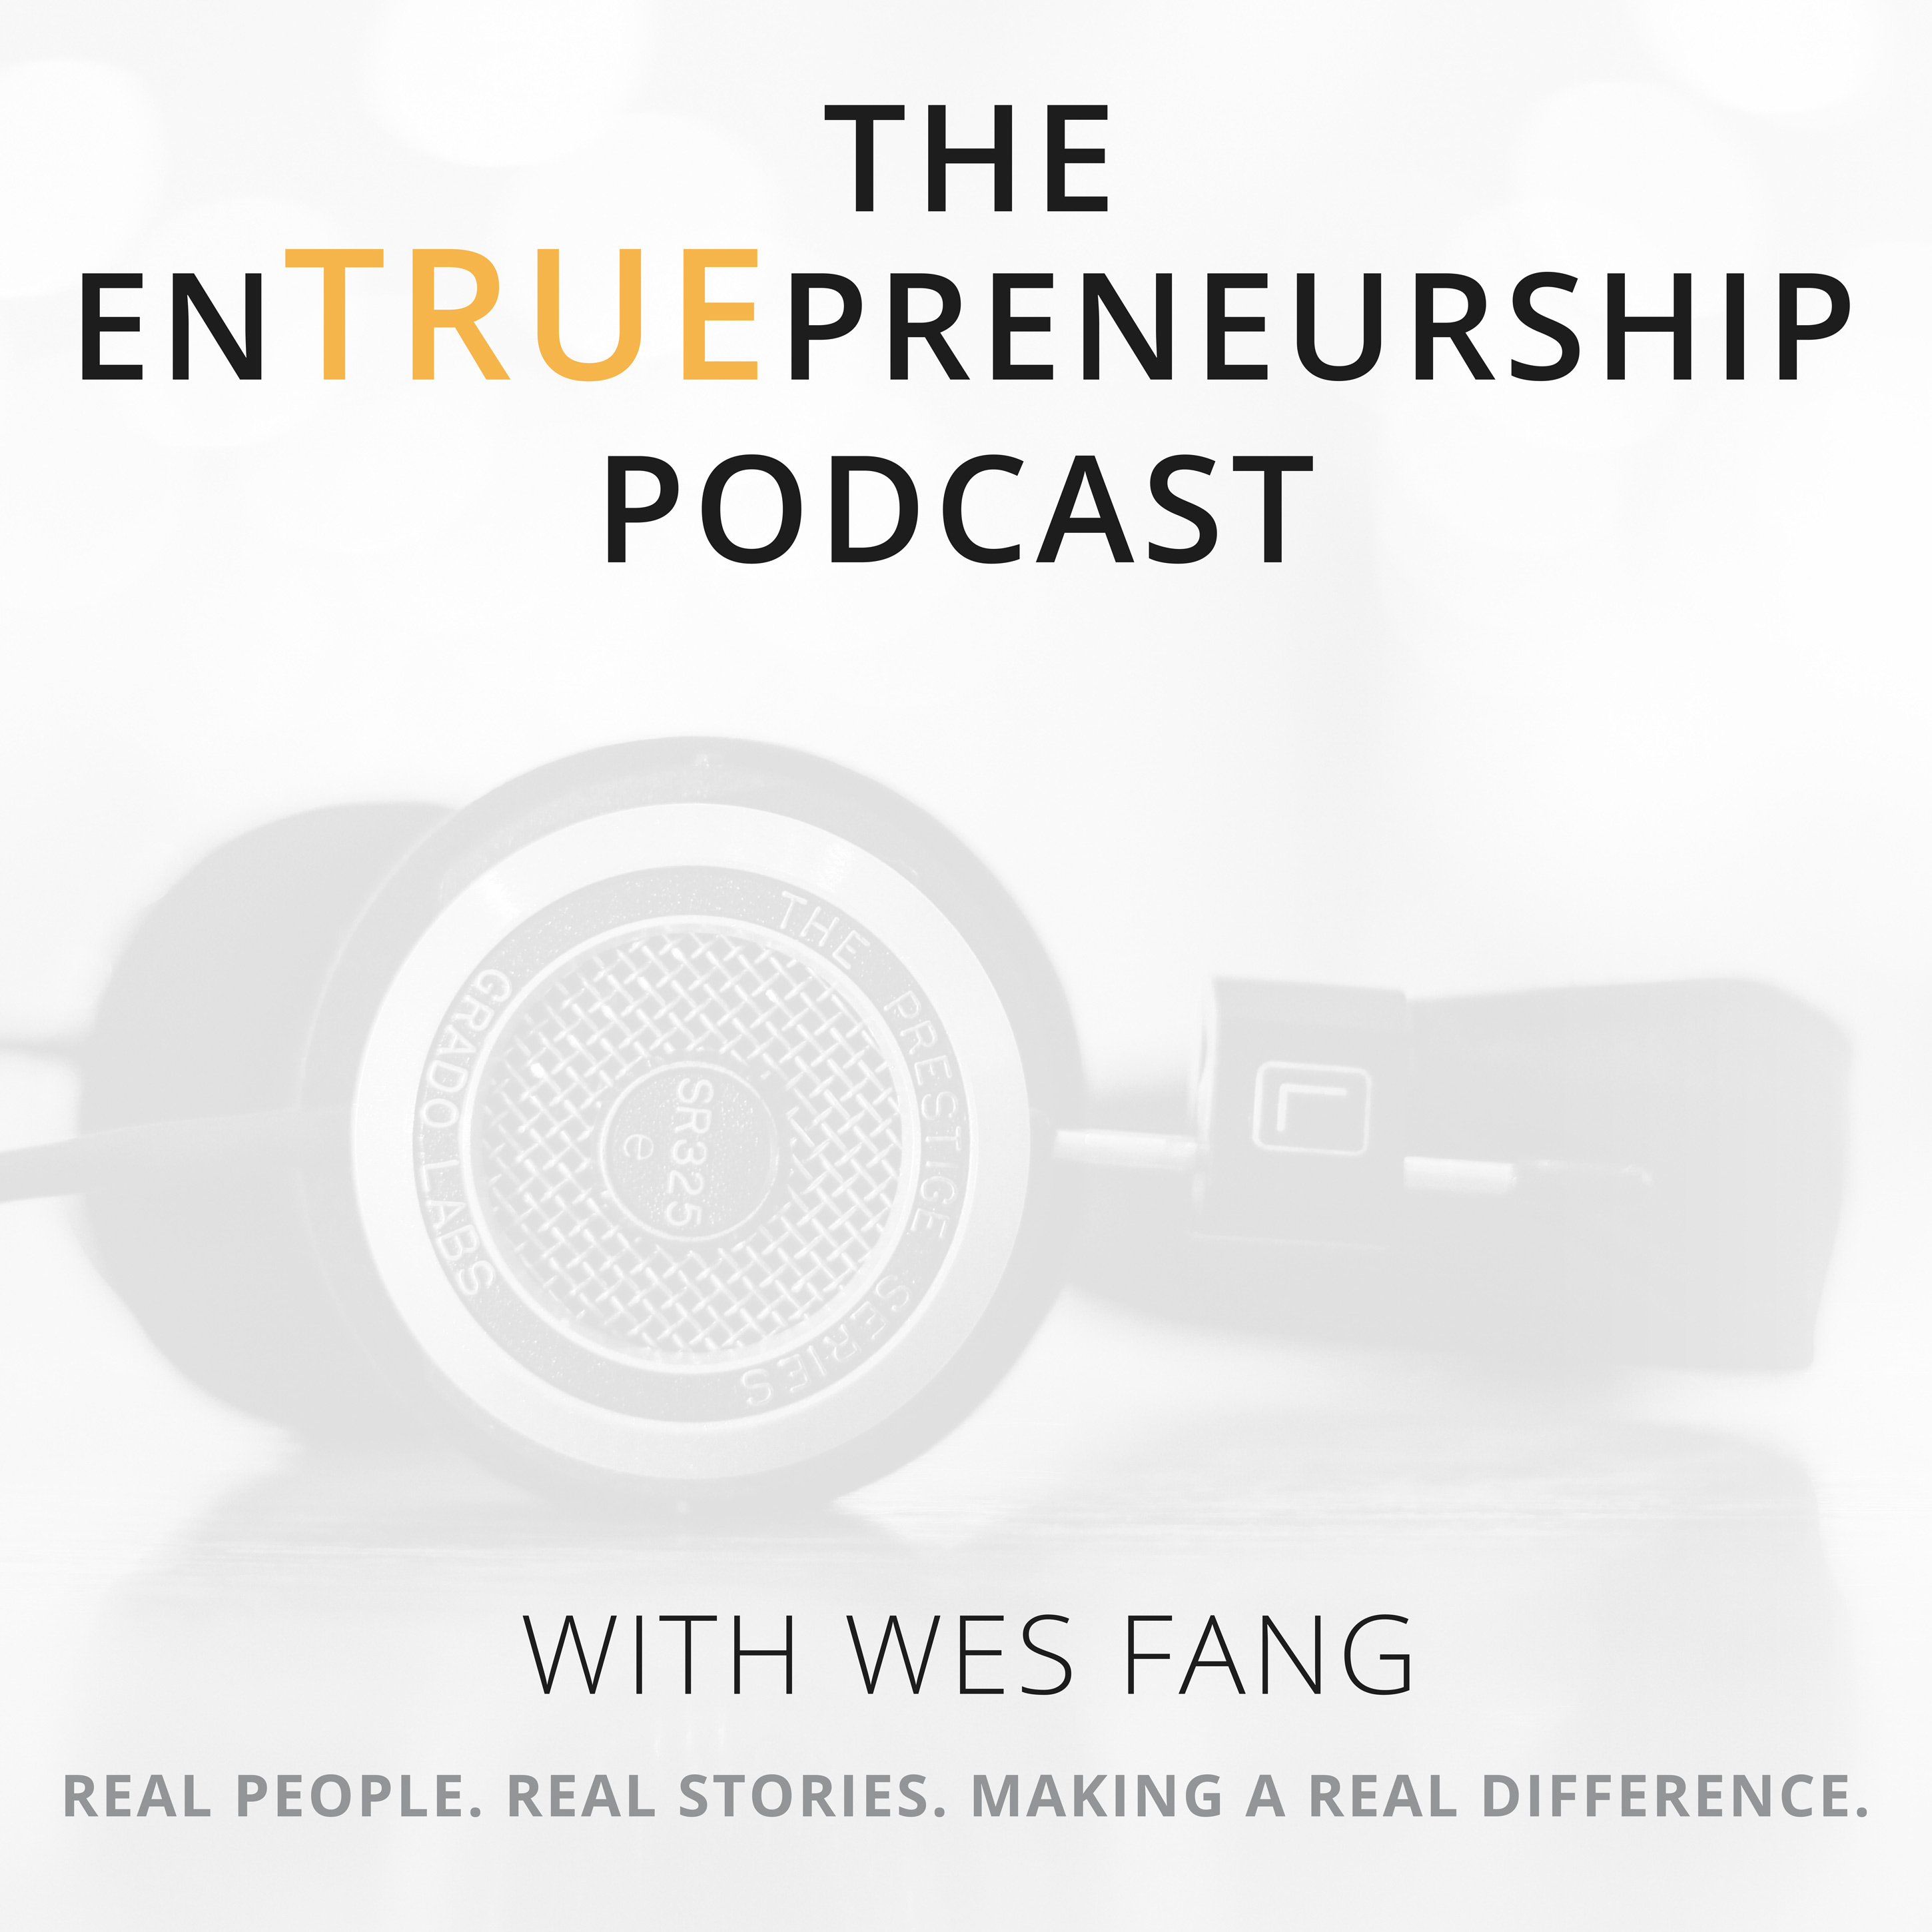 The EnTRUEpreneurship Podcast with Wes Fang - Revealing the TRUE Stories Behind Entrepreneurship show art